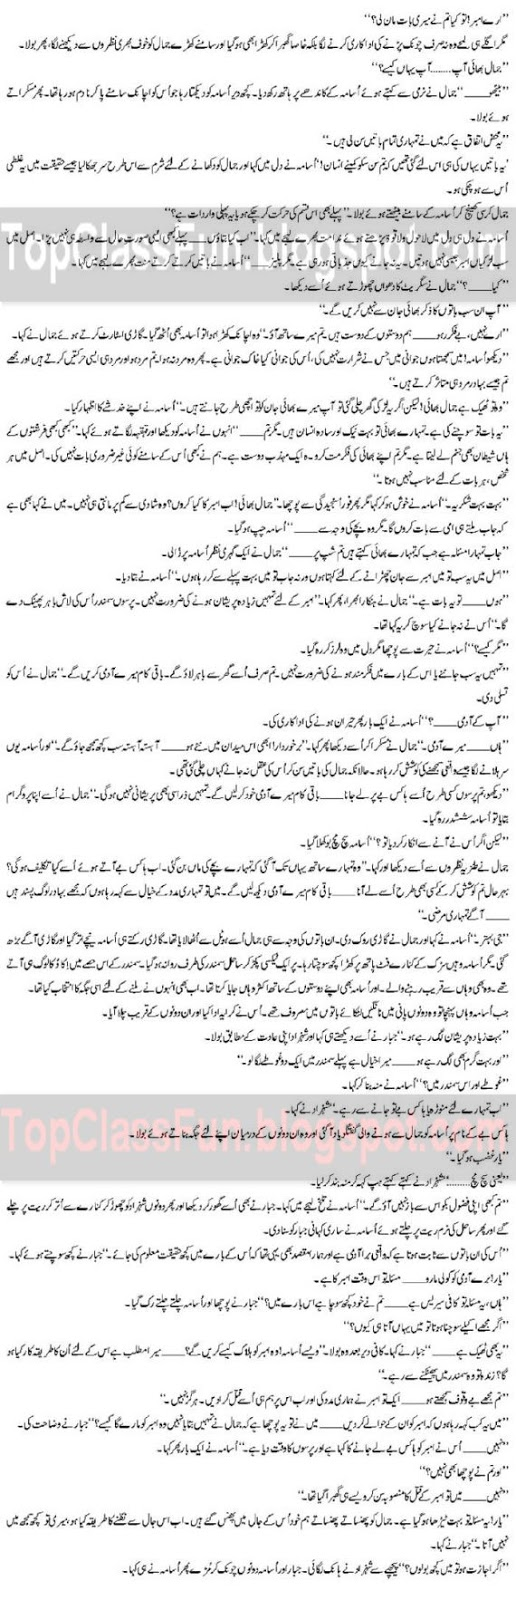 Romantic Urdu Novel - MOHABBAT – By Shahina Chanda Mehtab Page 10